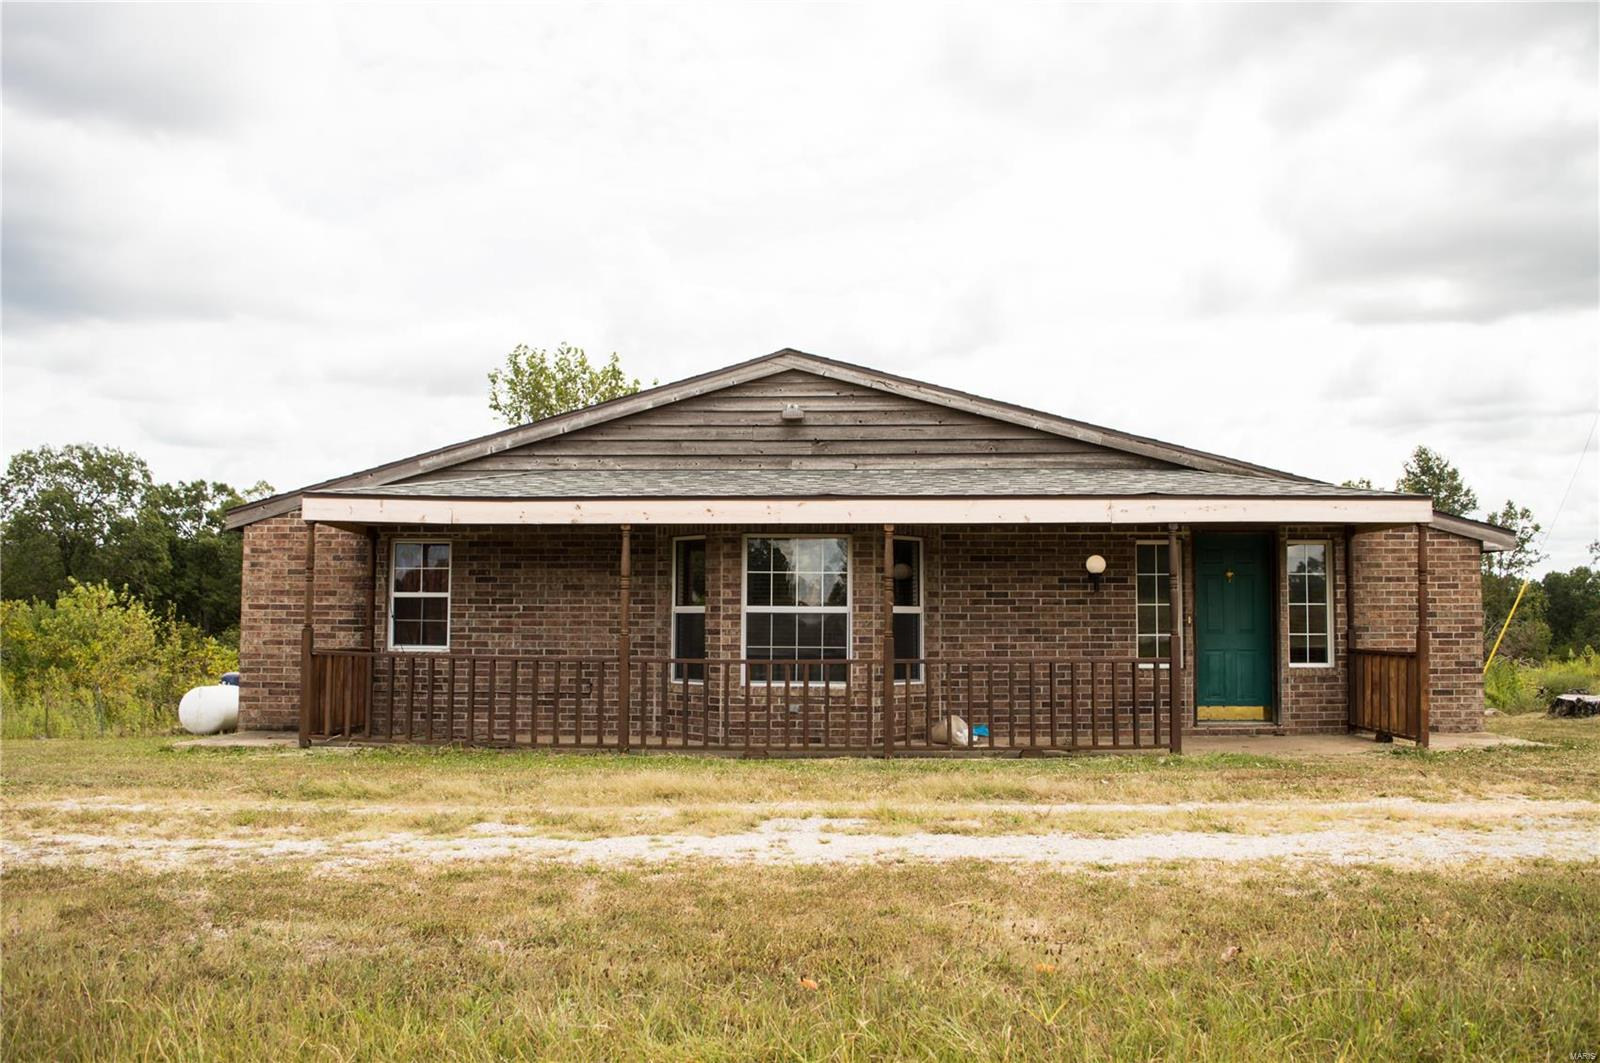 1510 64 state Hwy W Property Photo - Tunas, MO real estate listing